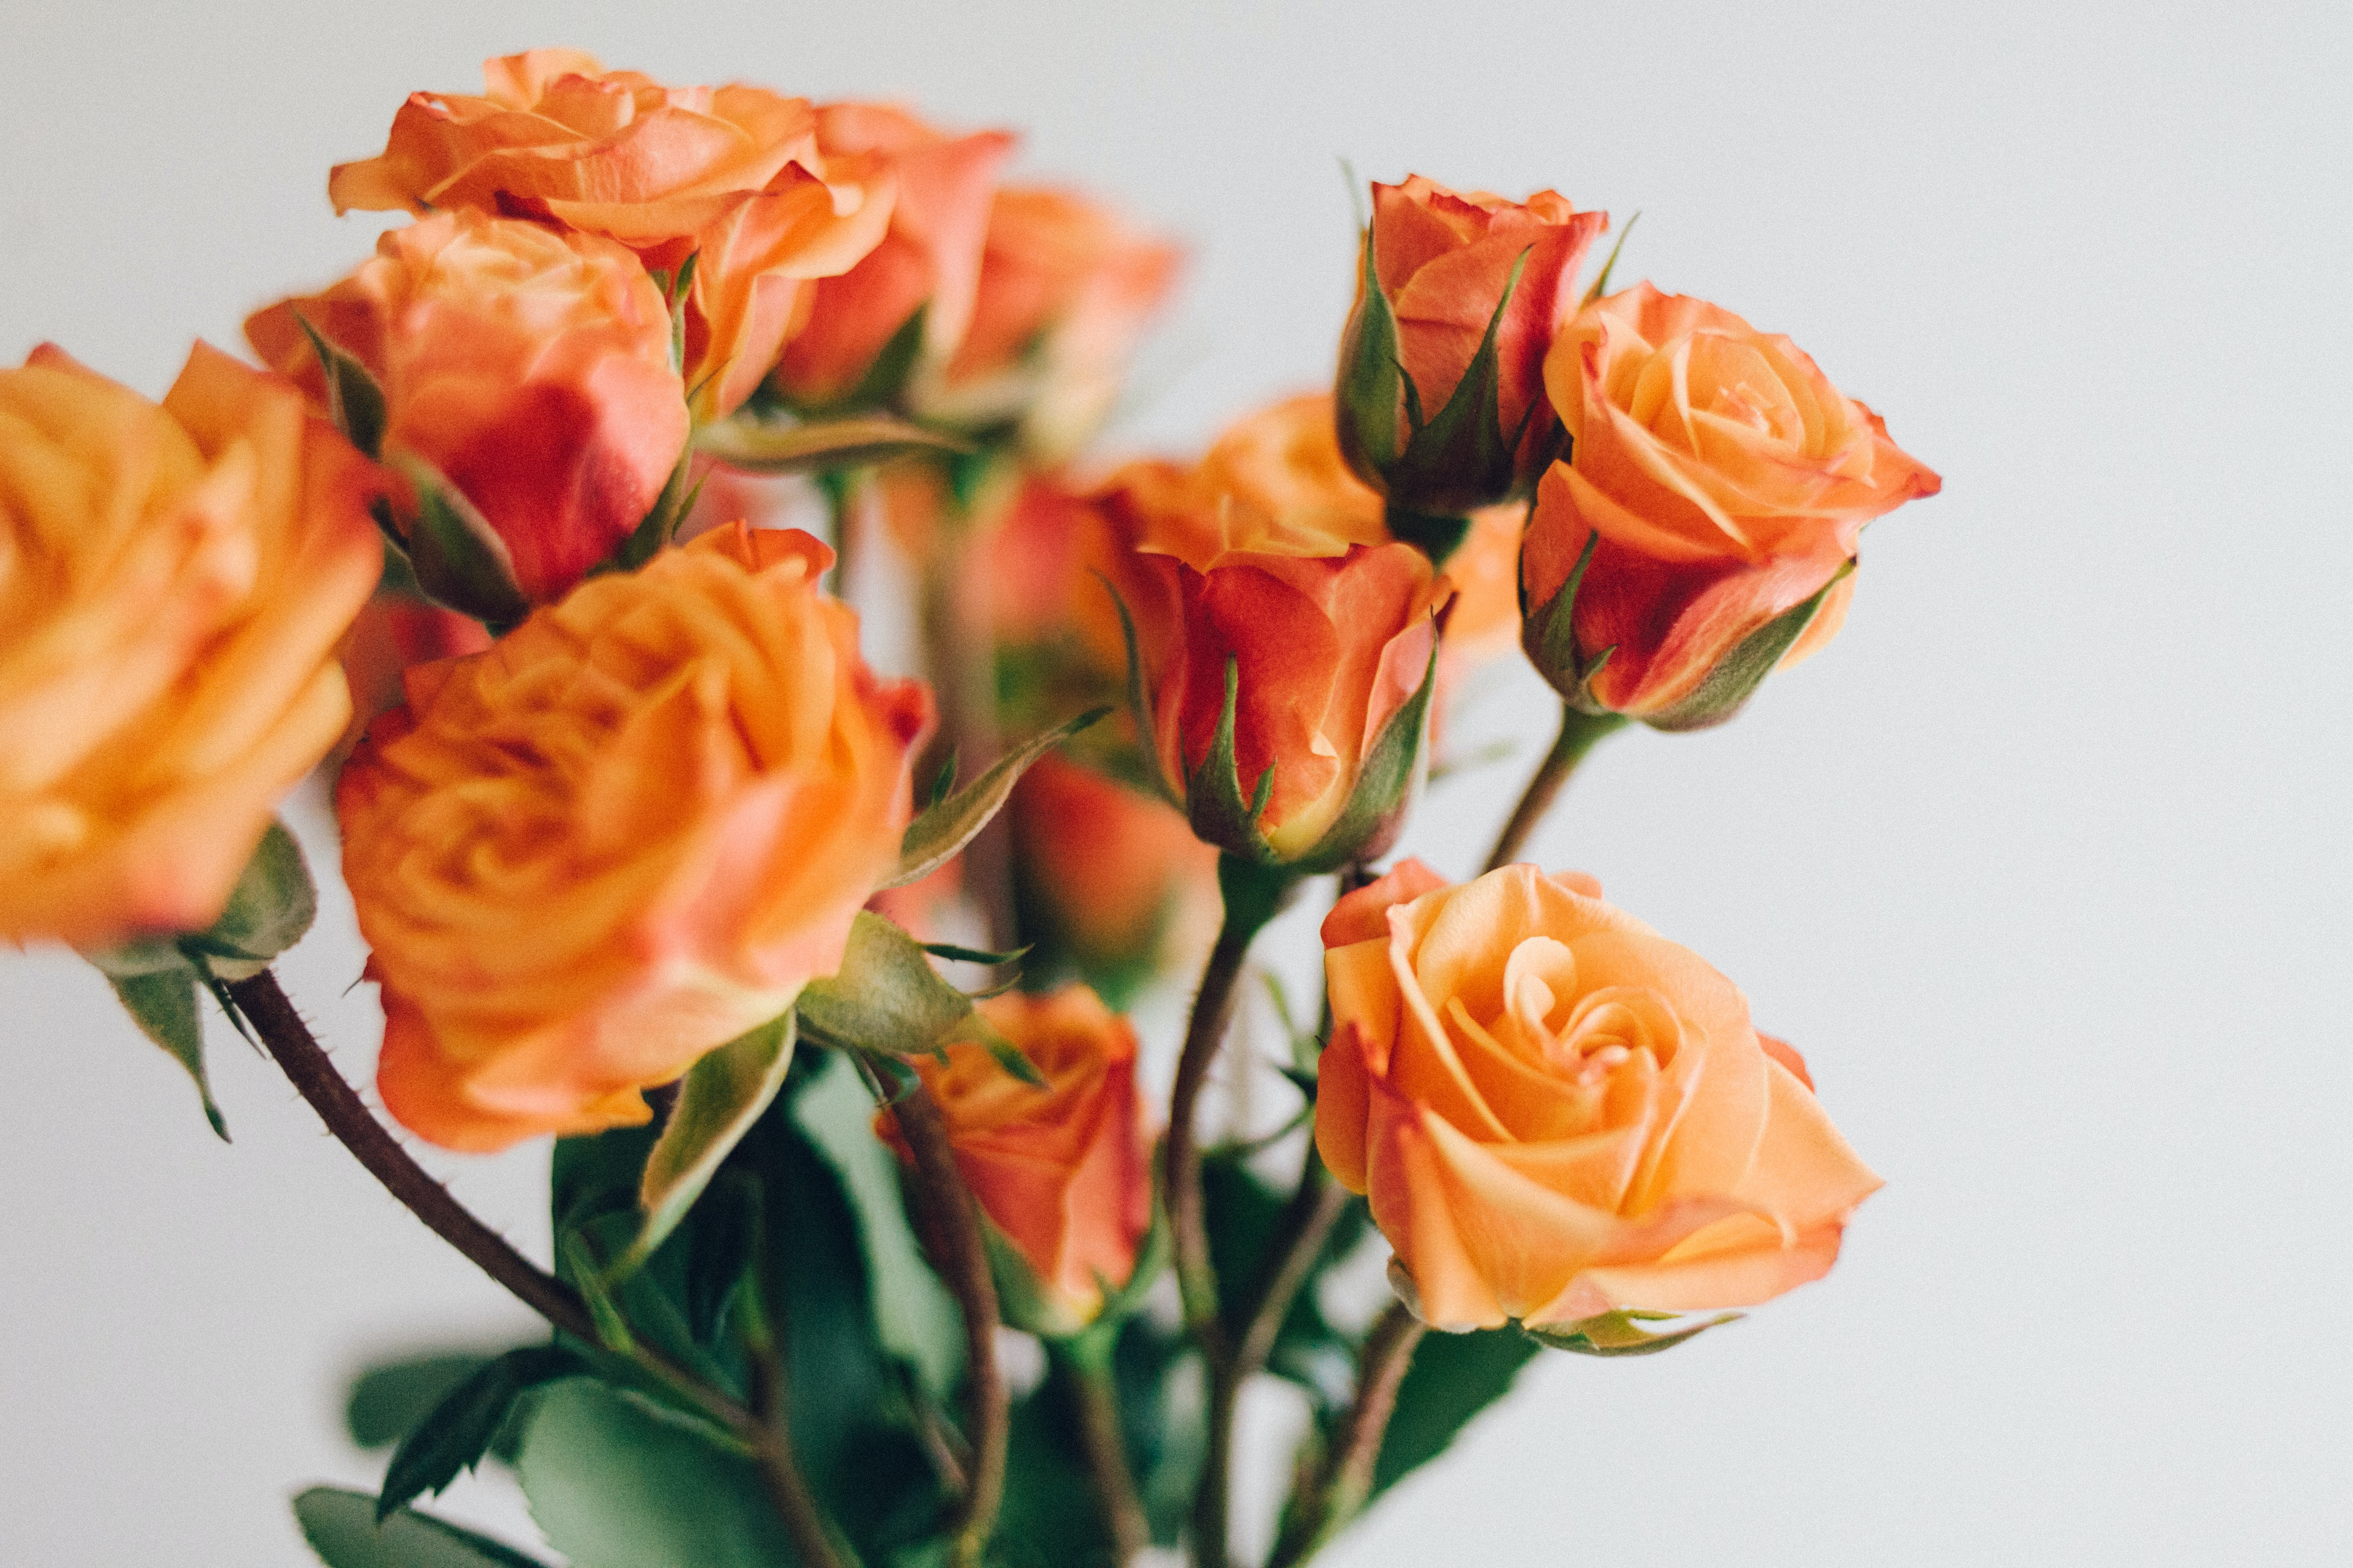 close up photo of orange roses